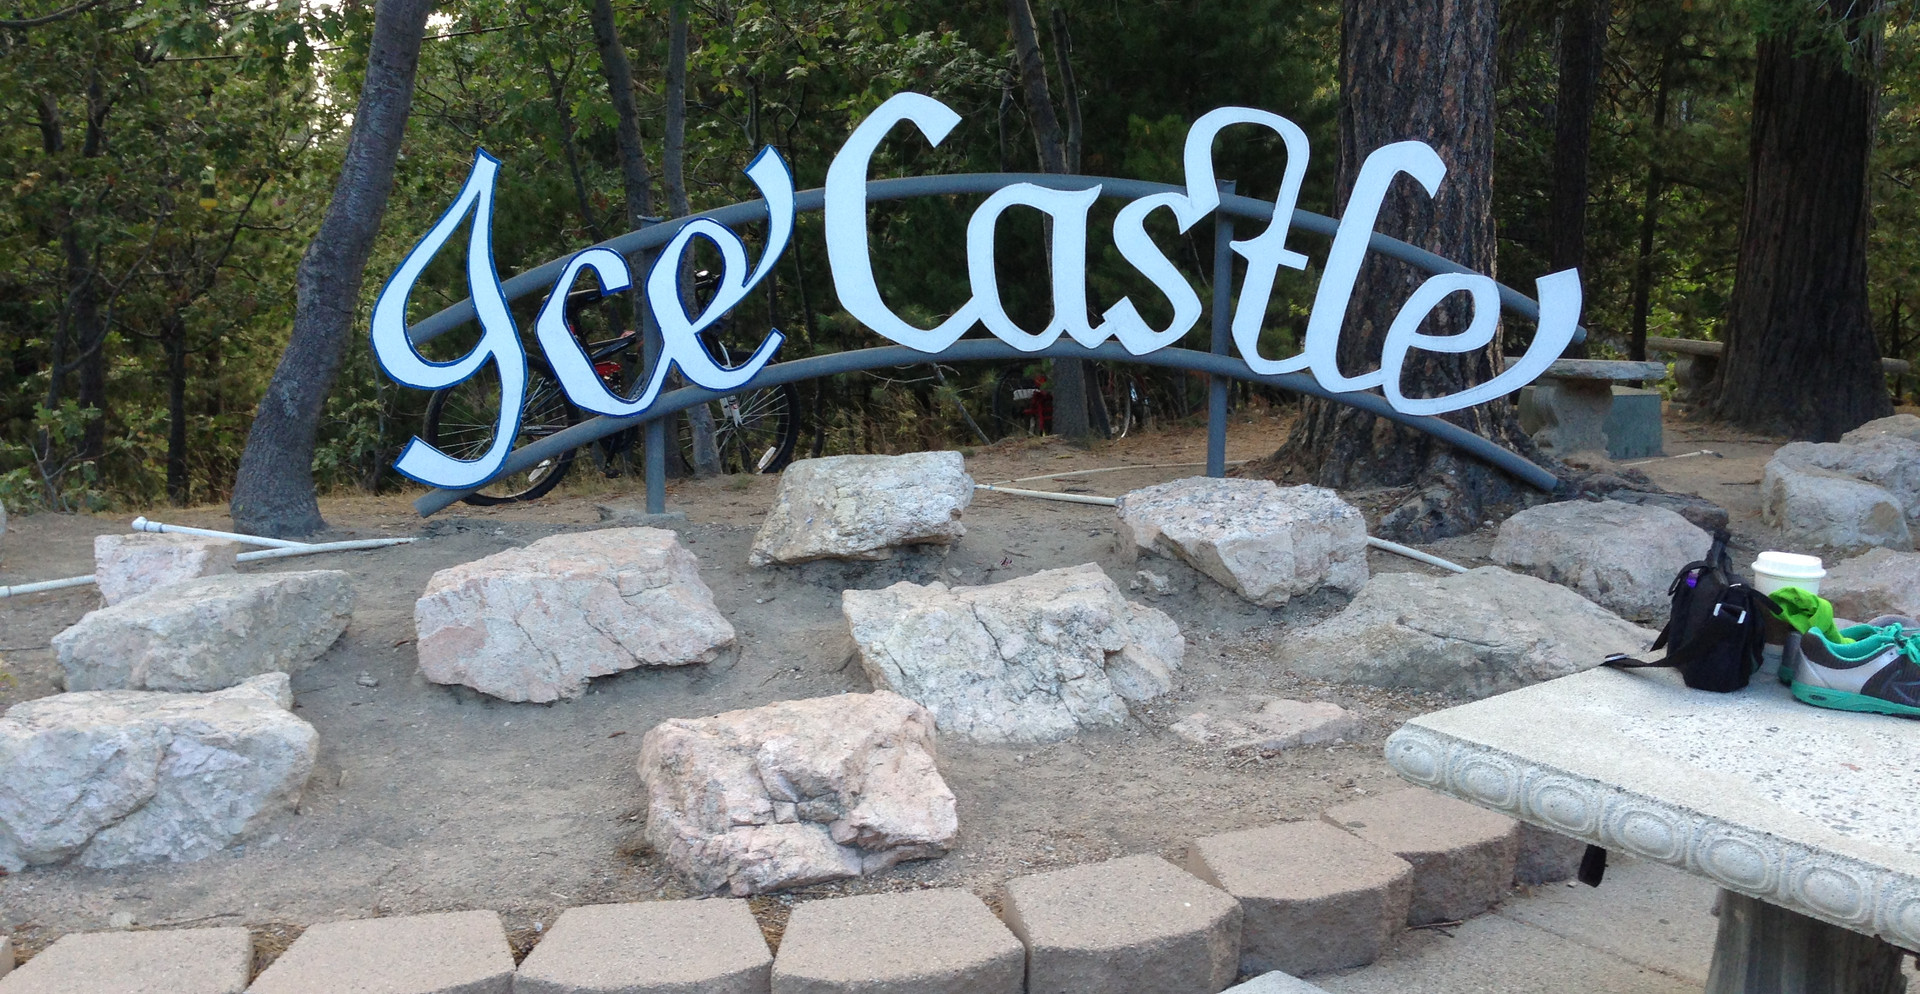 The Lore of Ice Castle Int'l Training Center